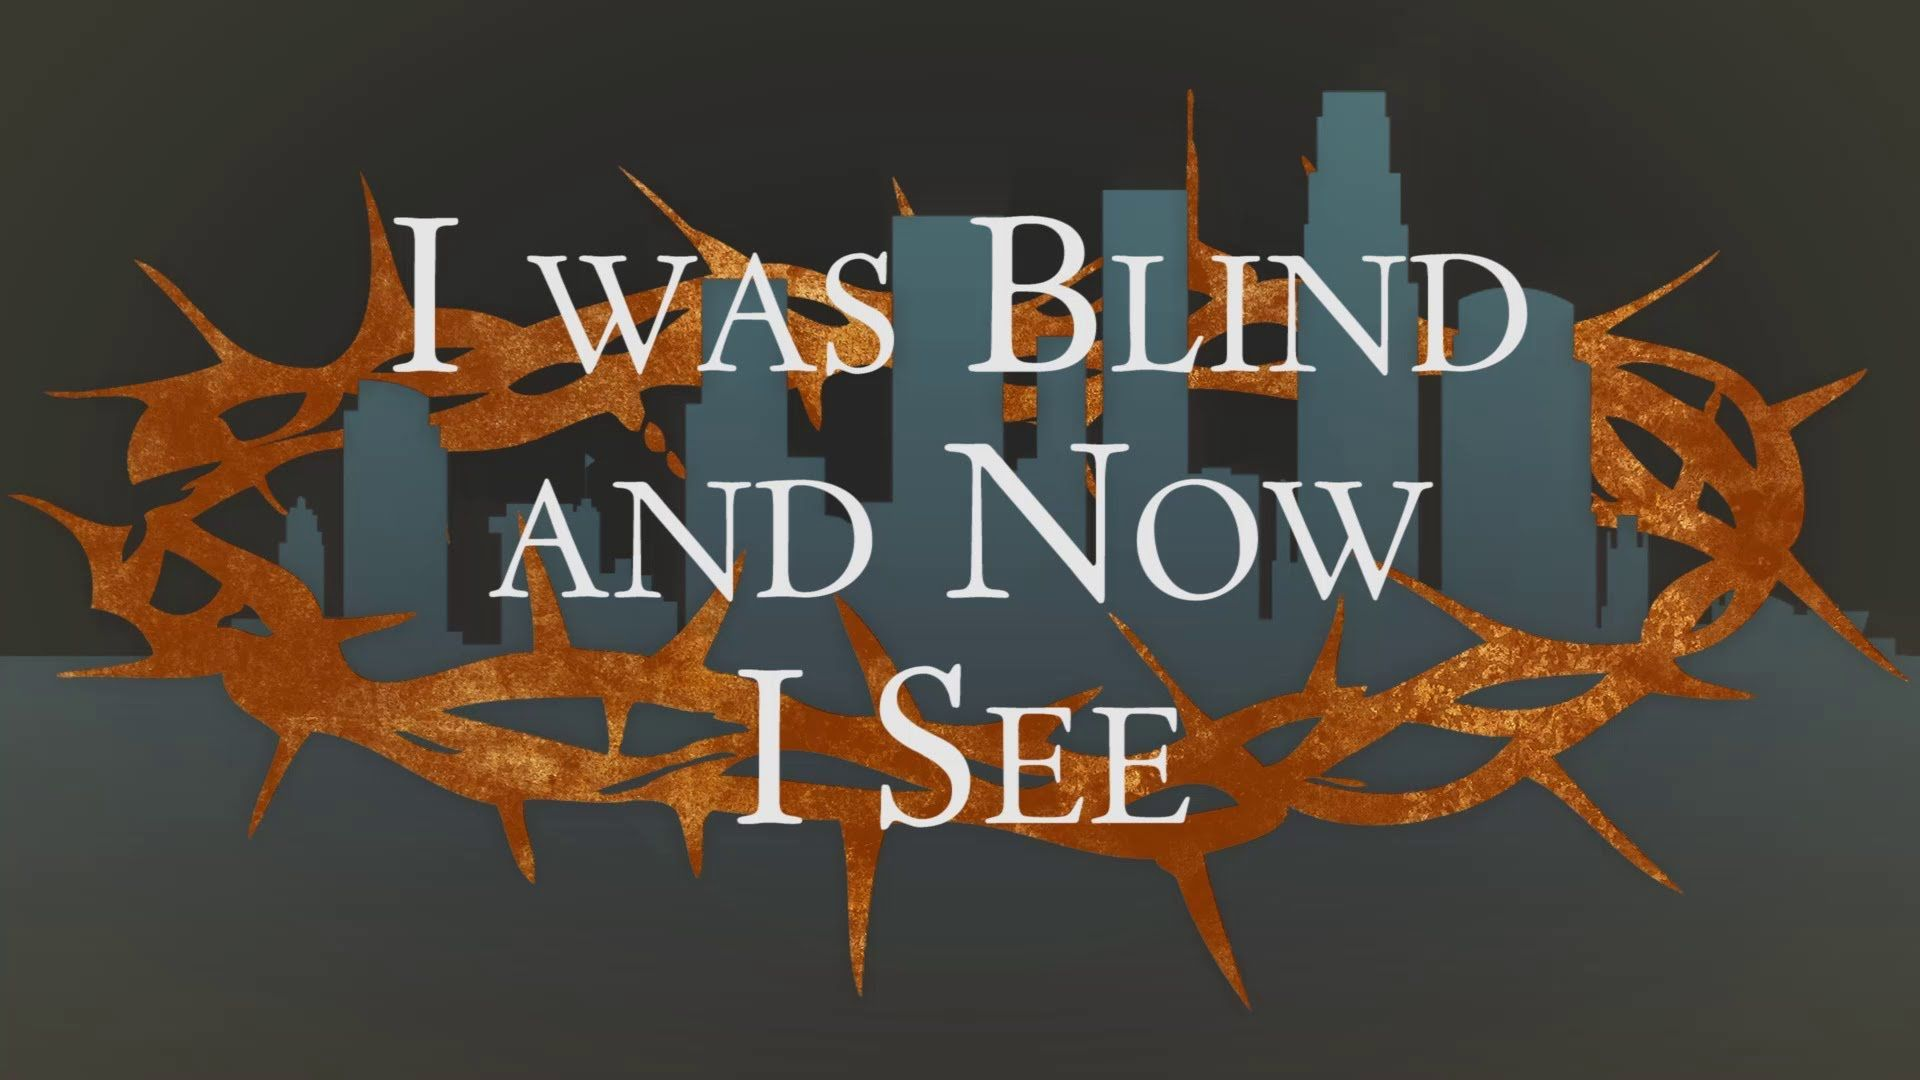 I was blind but now i see john 9141 calvary chapel